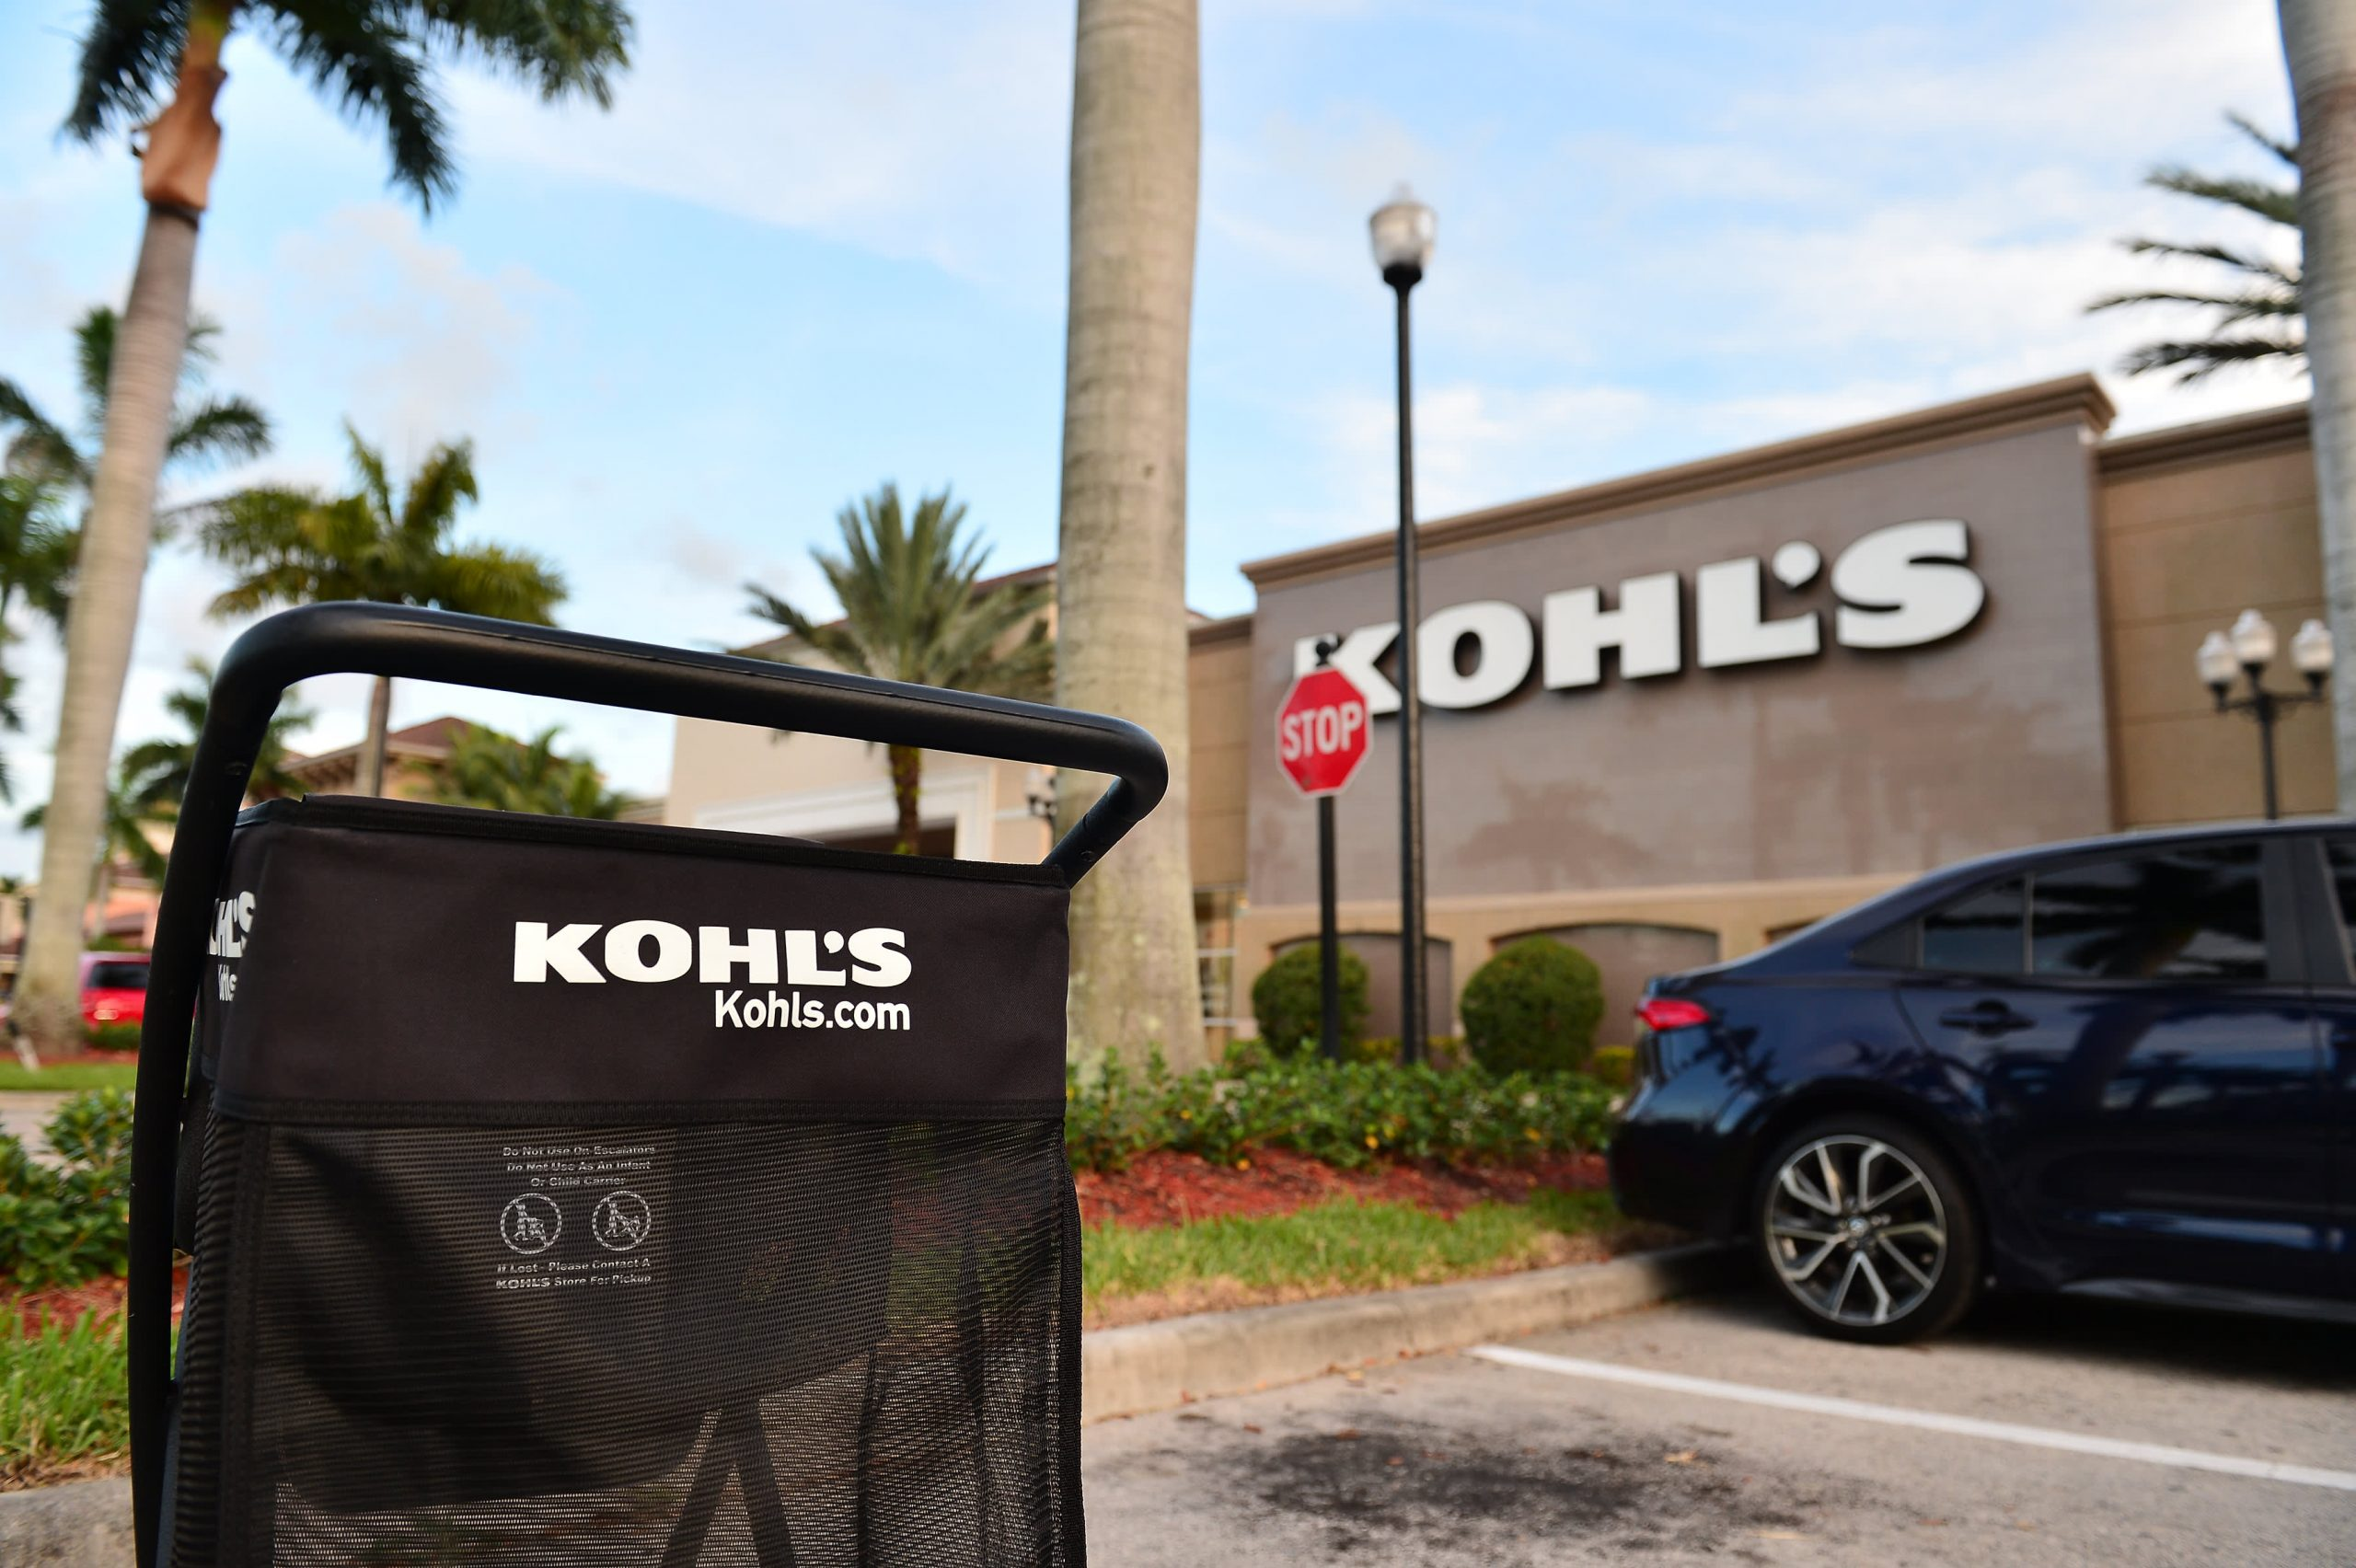 kohls-sees-holiday-quarter-revenue-down-10-but-sales-strengthening